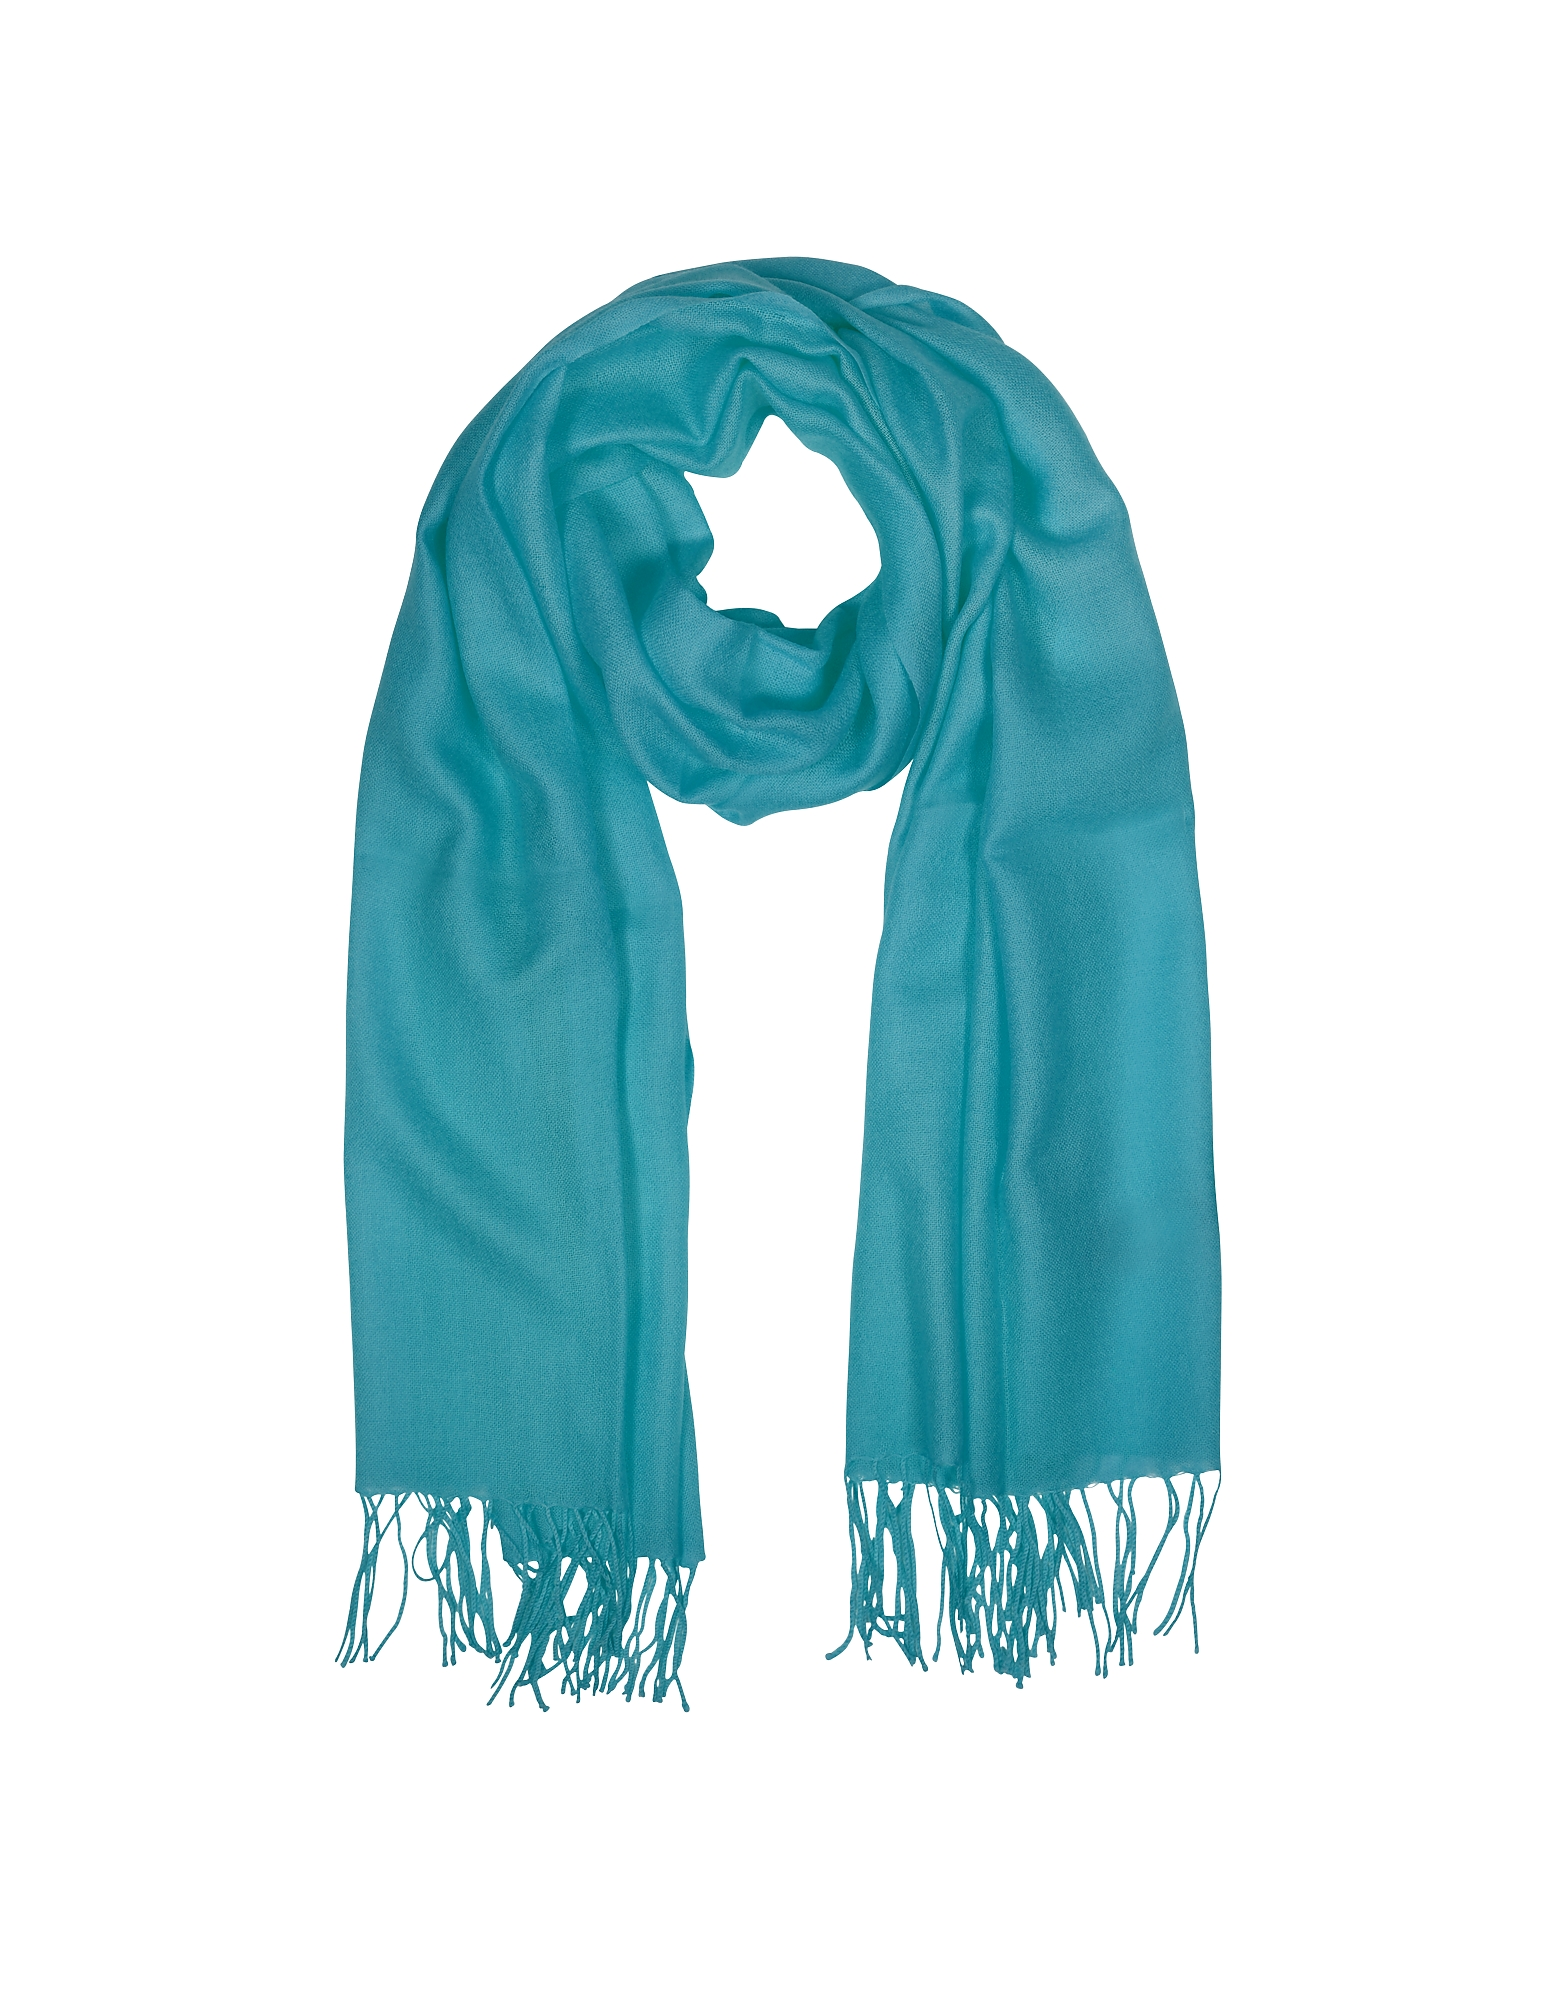 Mila Schon Scarves, Wool and Cashmere Fringed Stole